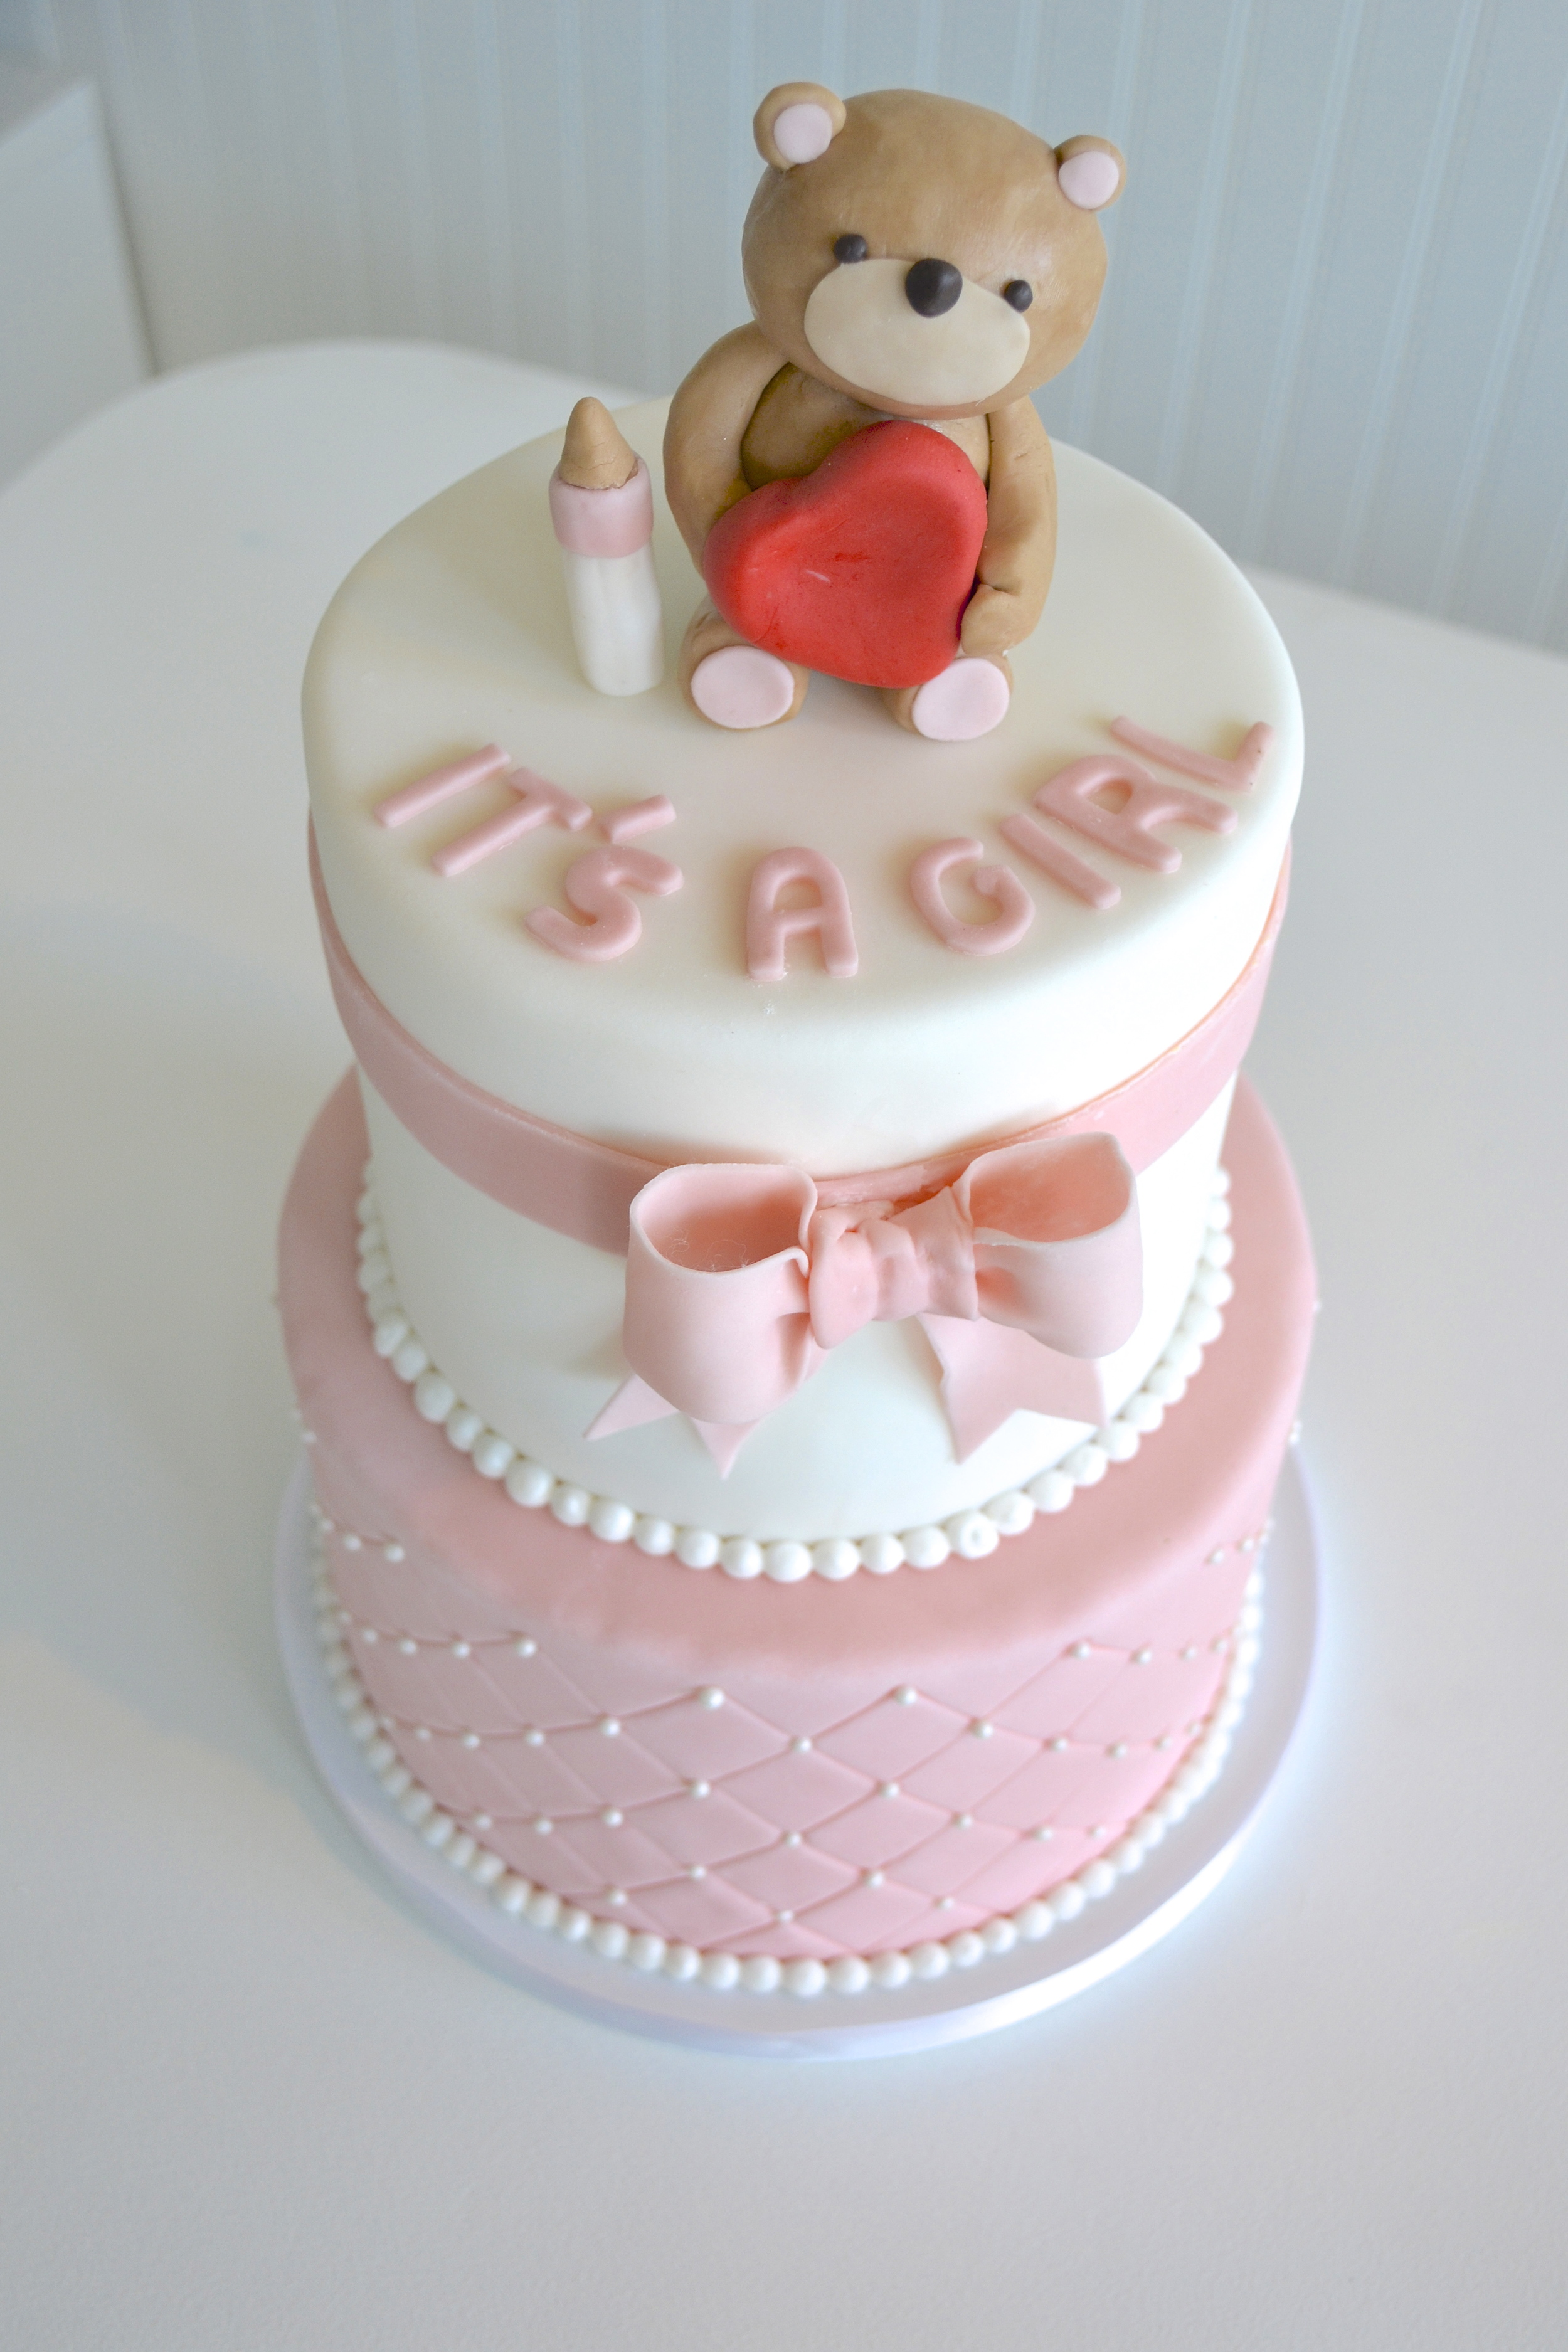 Seattle Celebration Cakes | Seattle Birthday Cakes | The SweetSide | Seattle Baby Shower Cakes and Desserts